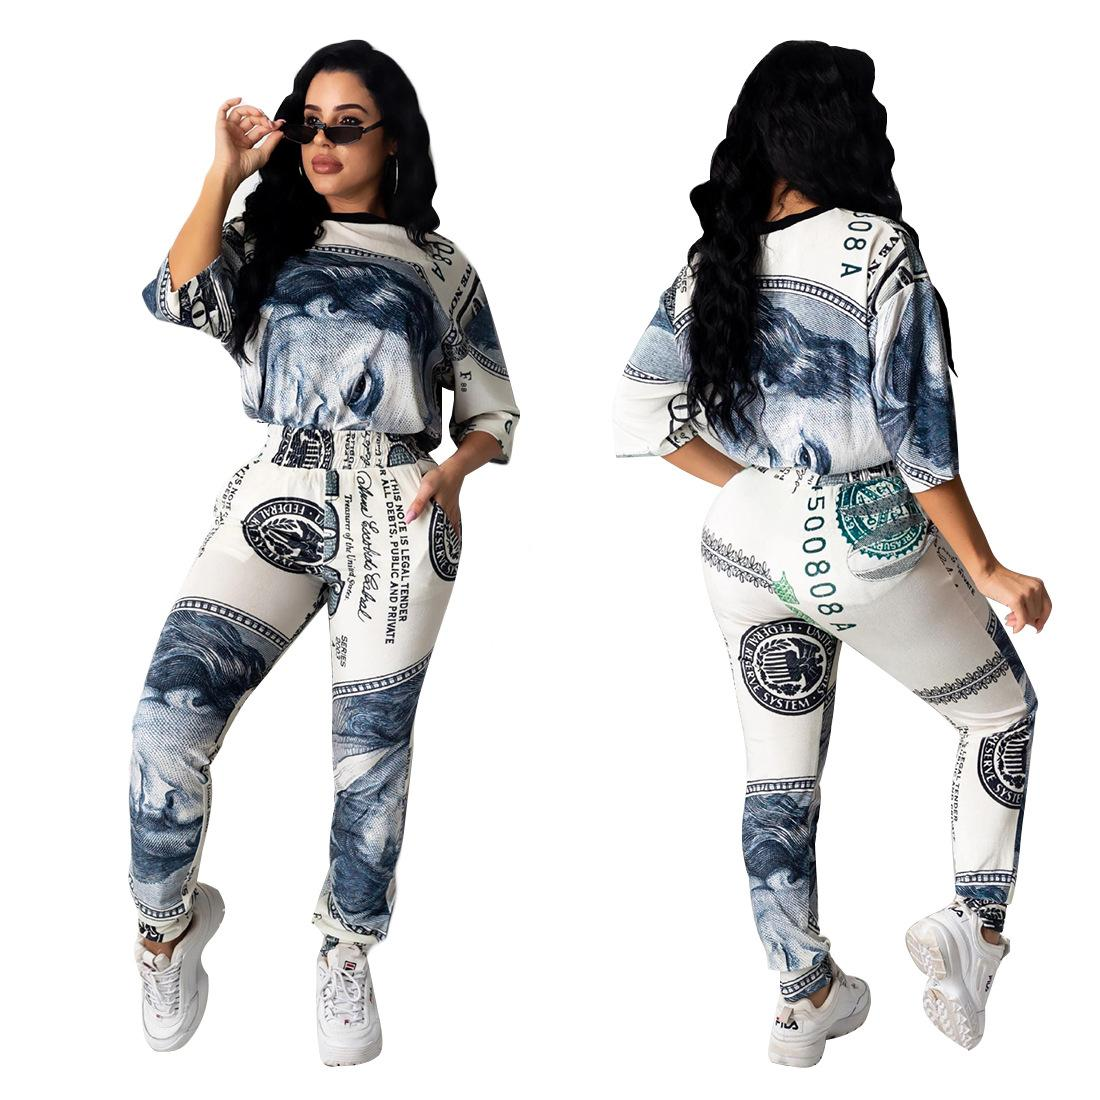 Free Ship 2020 New Women Fashion Dollar Print Tracksuit Casual Crew Neck T-shirt and Pants Set 2Pcs Outfits